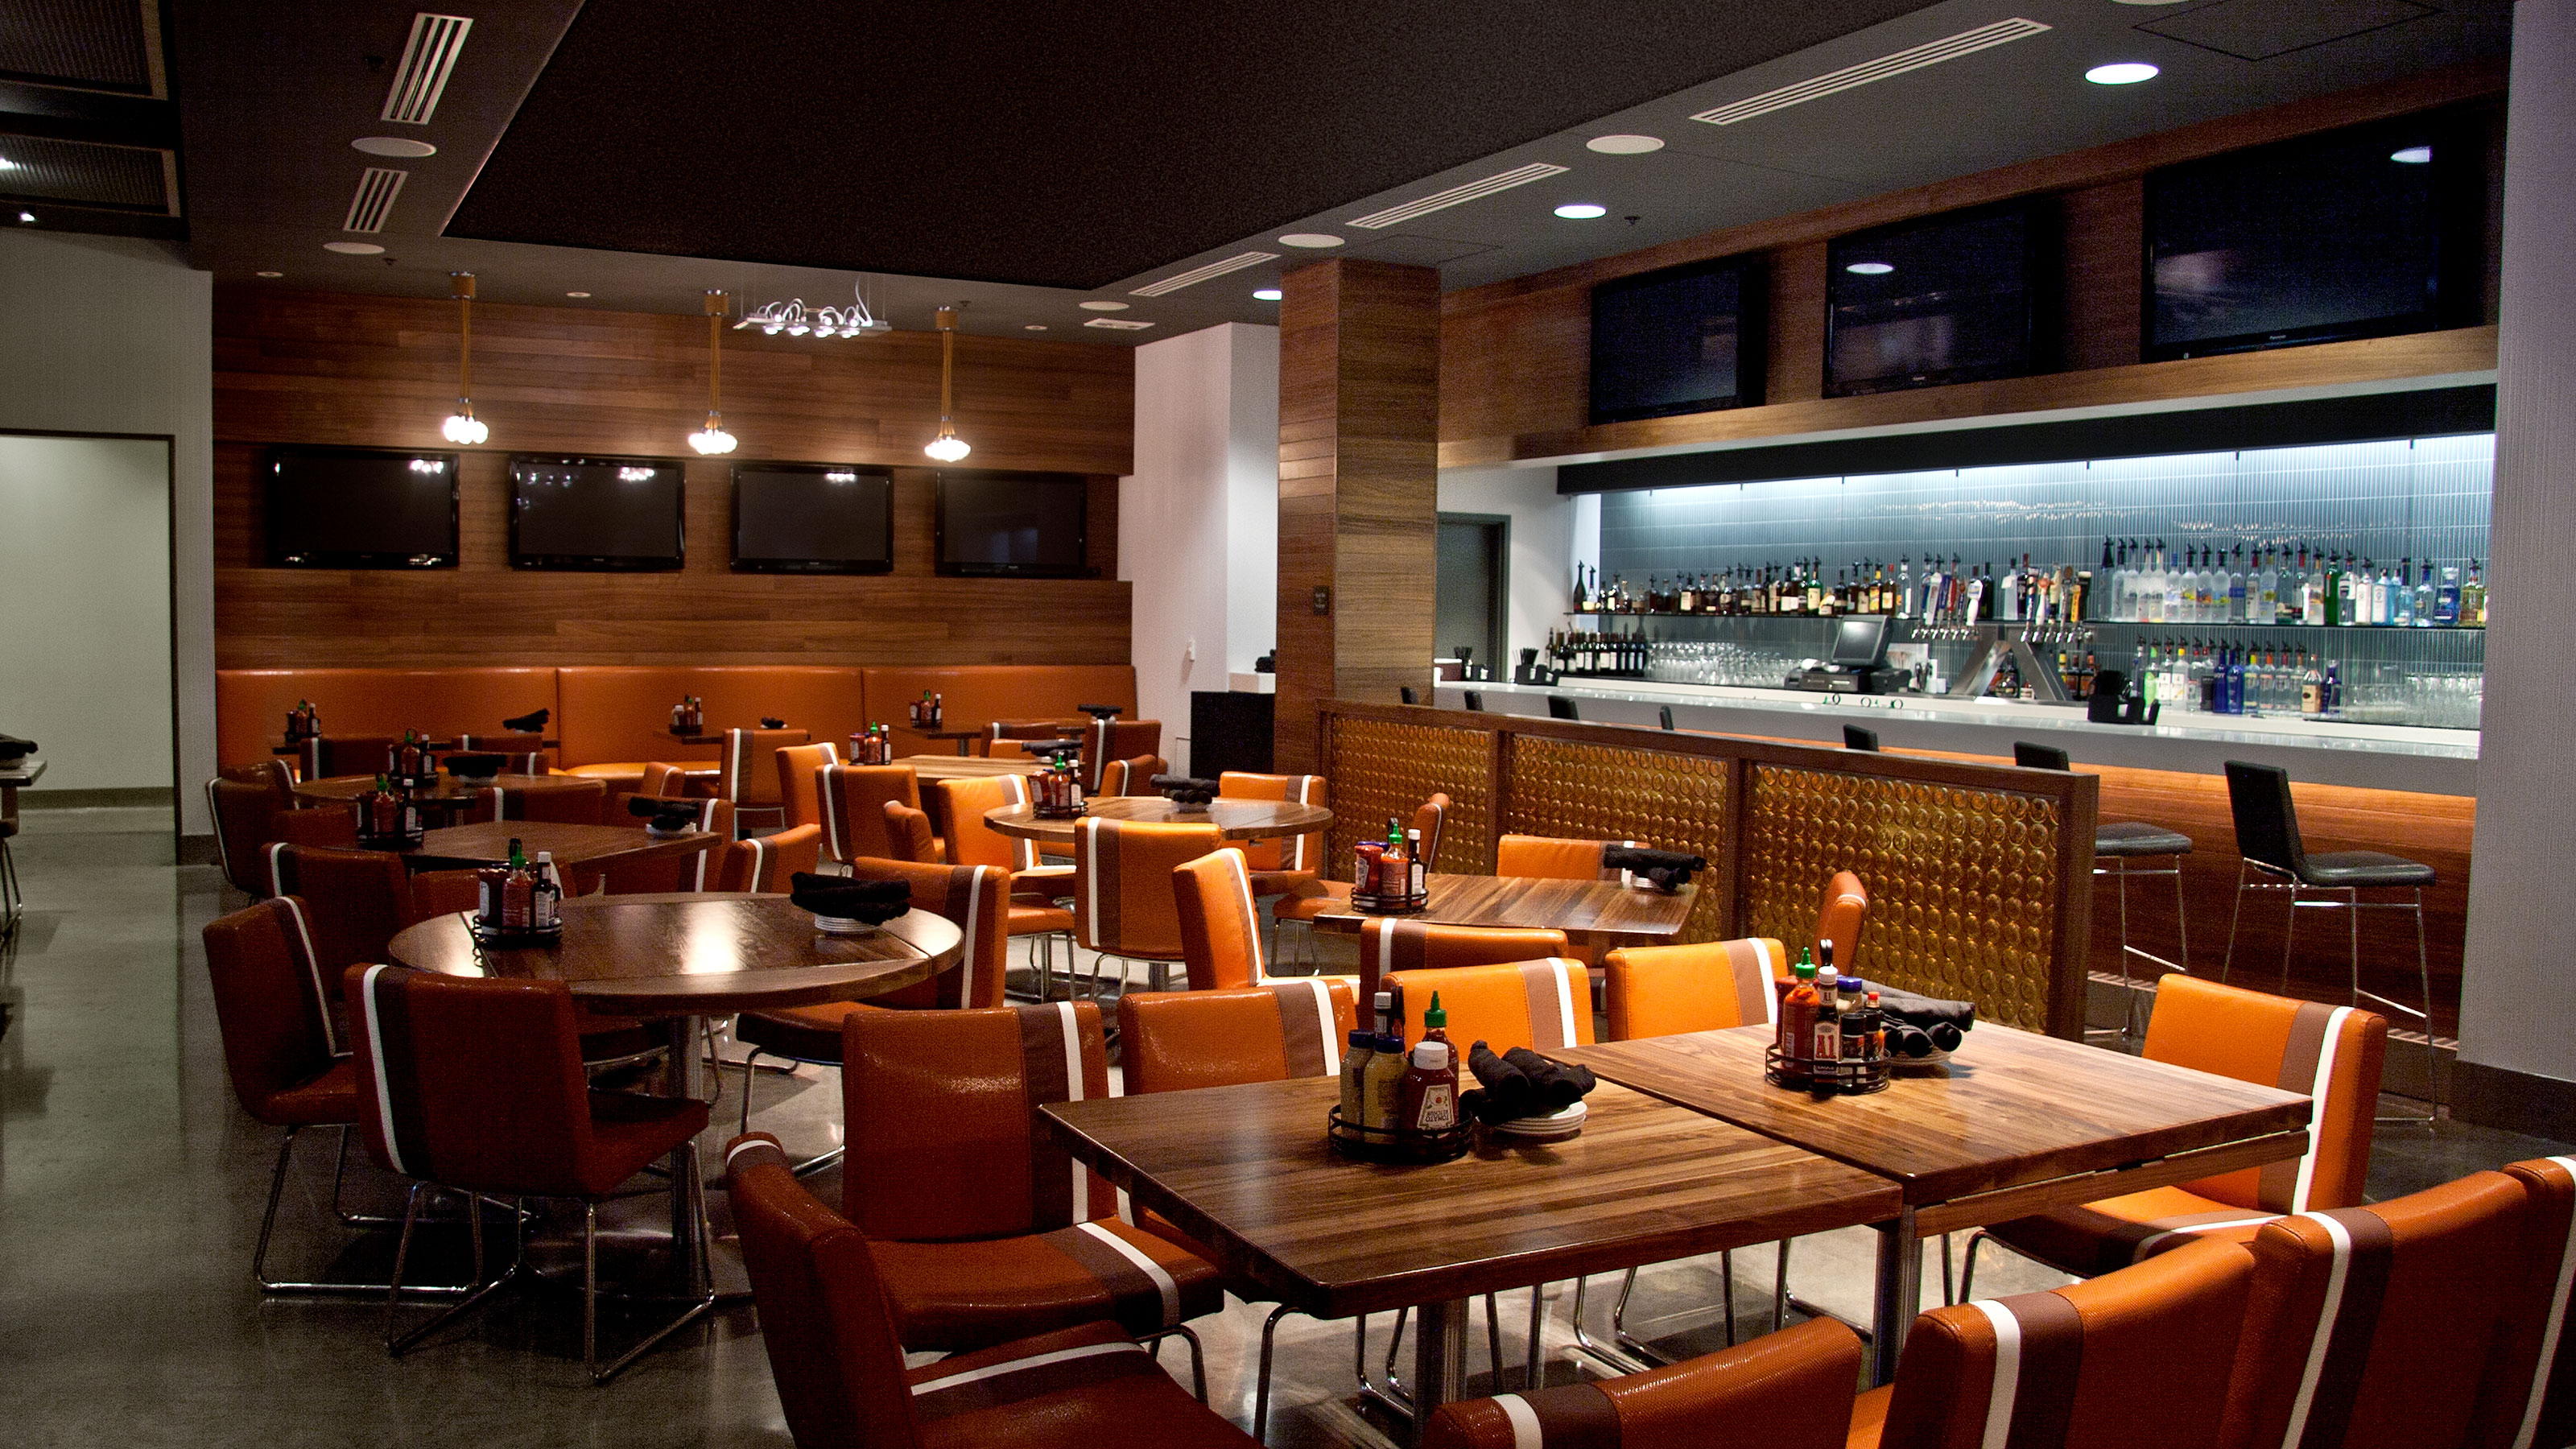 JW Marriott, Indianapolis, IN | D&L Wood Products, Inc